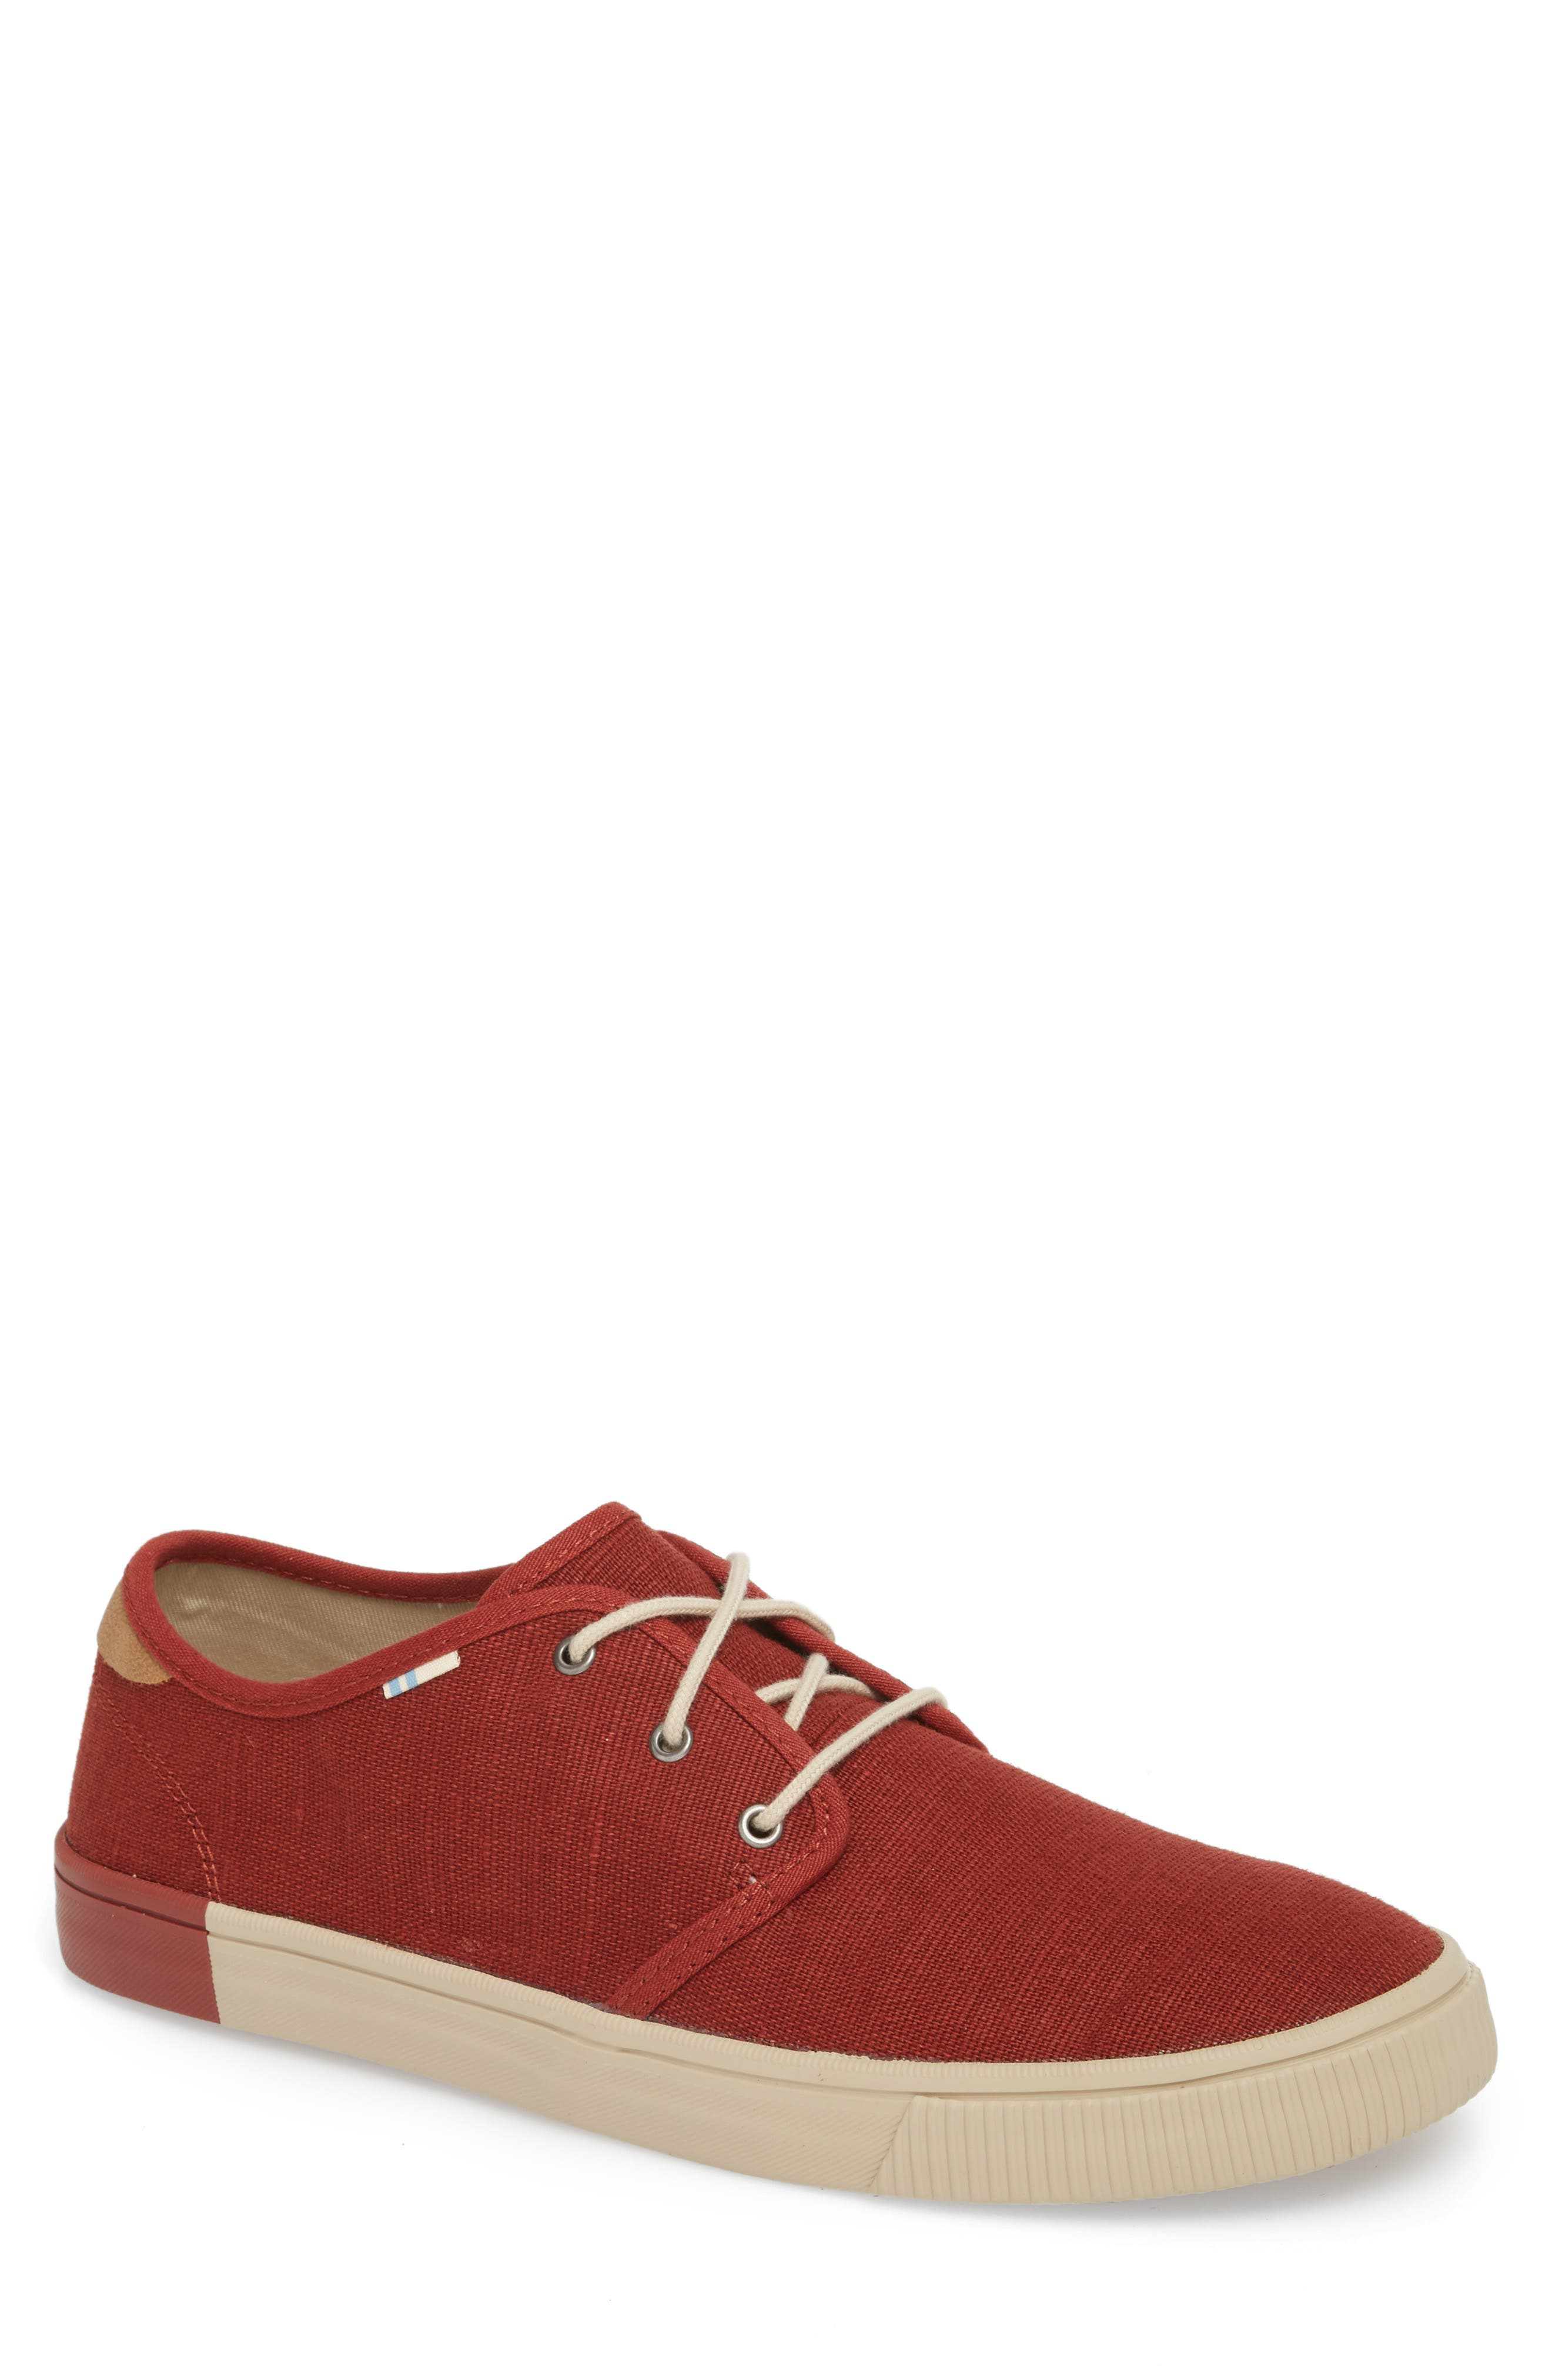 Carlo Low Top Sneaker,                         Main,                         color, Burnt Henna Heritage Canvas